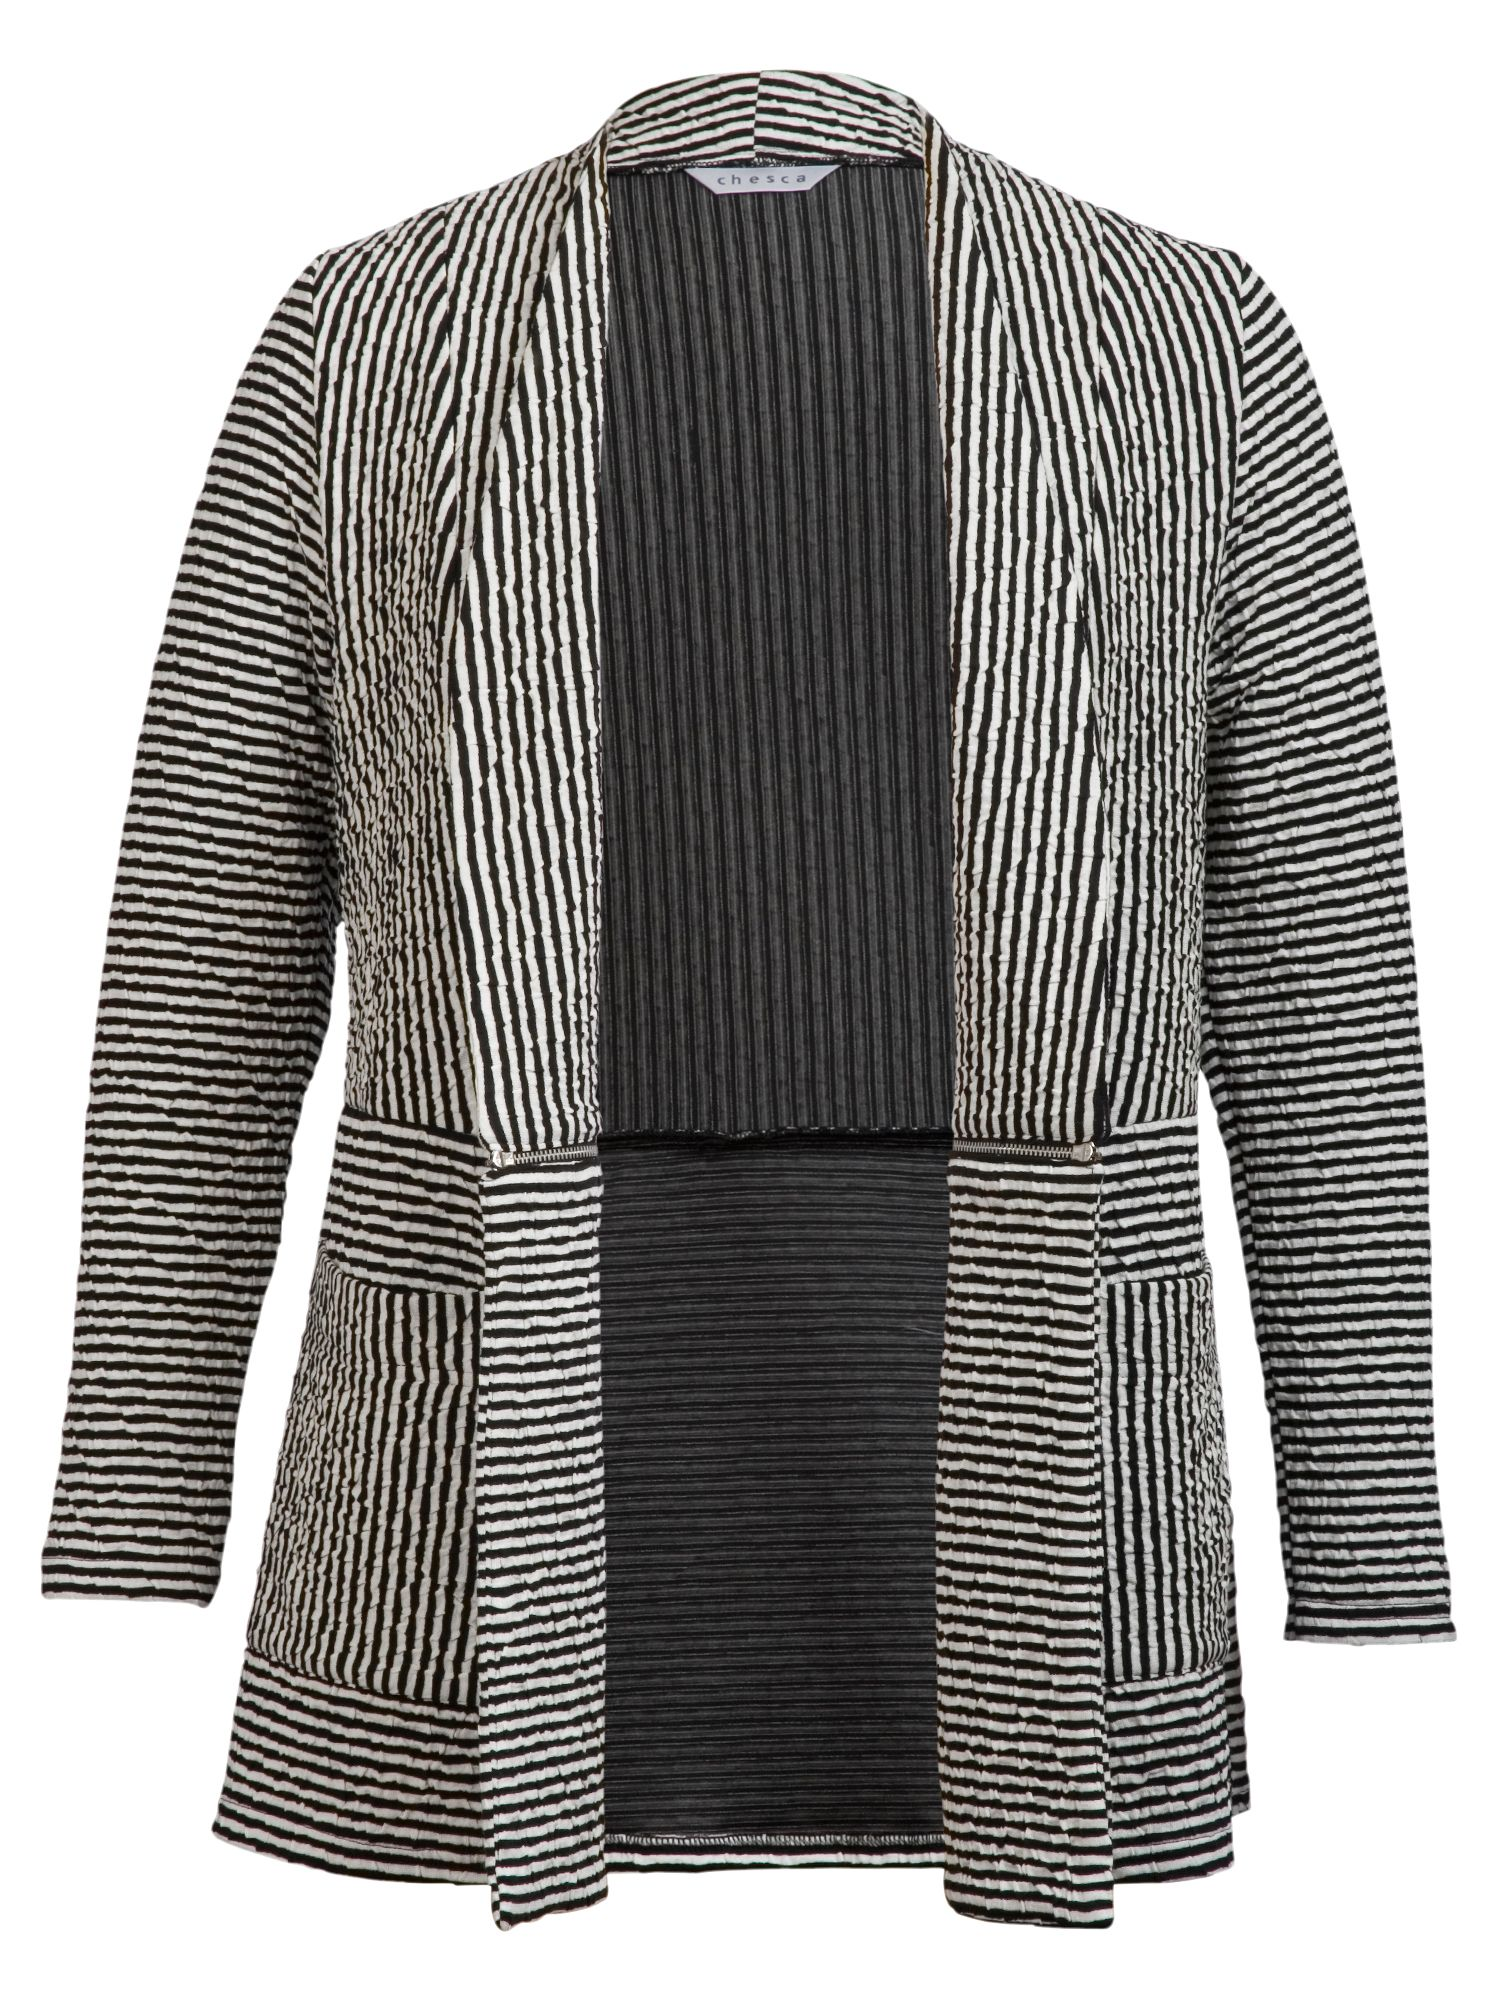 Striped cloque cardigan